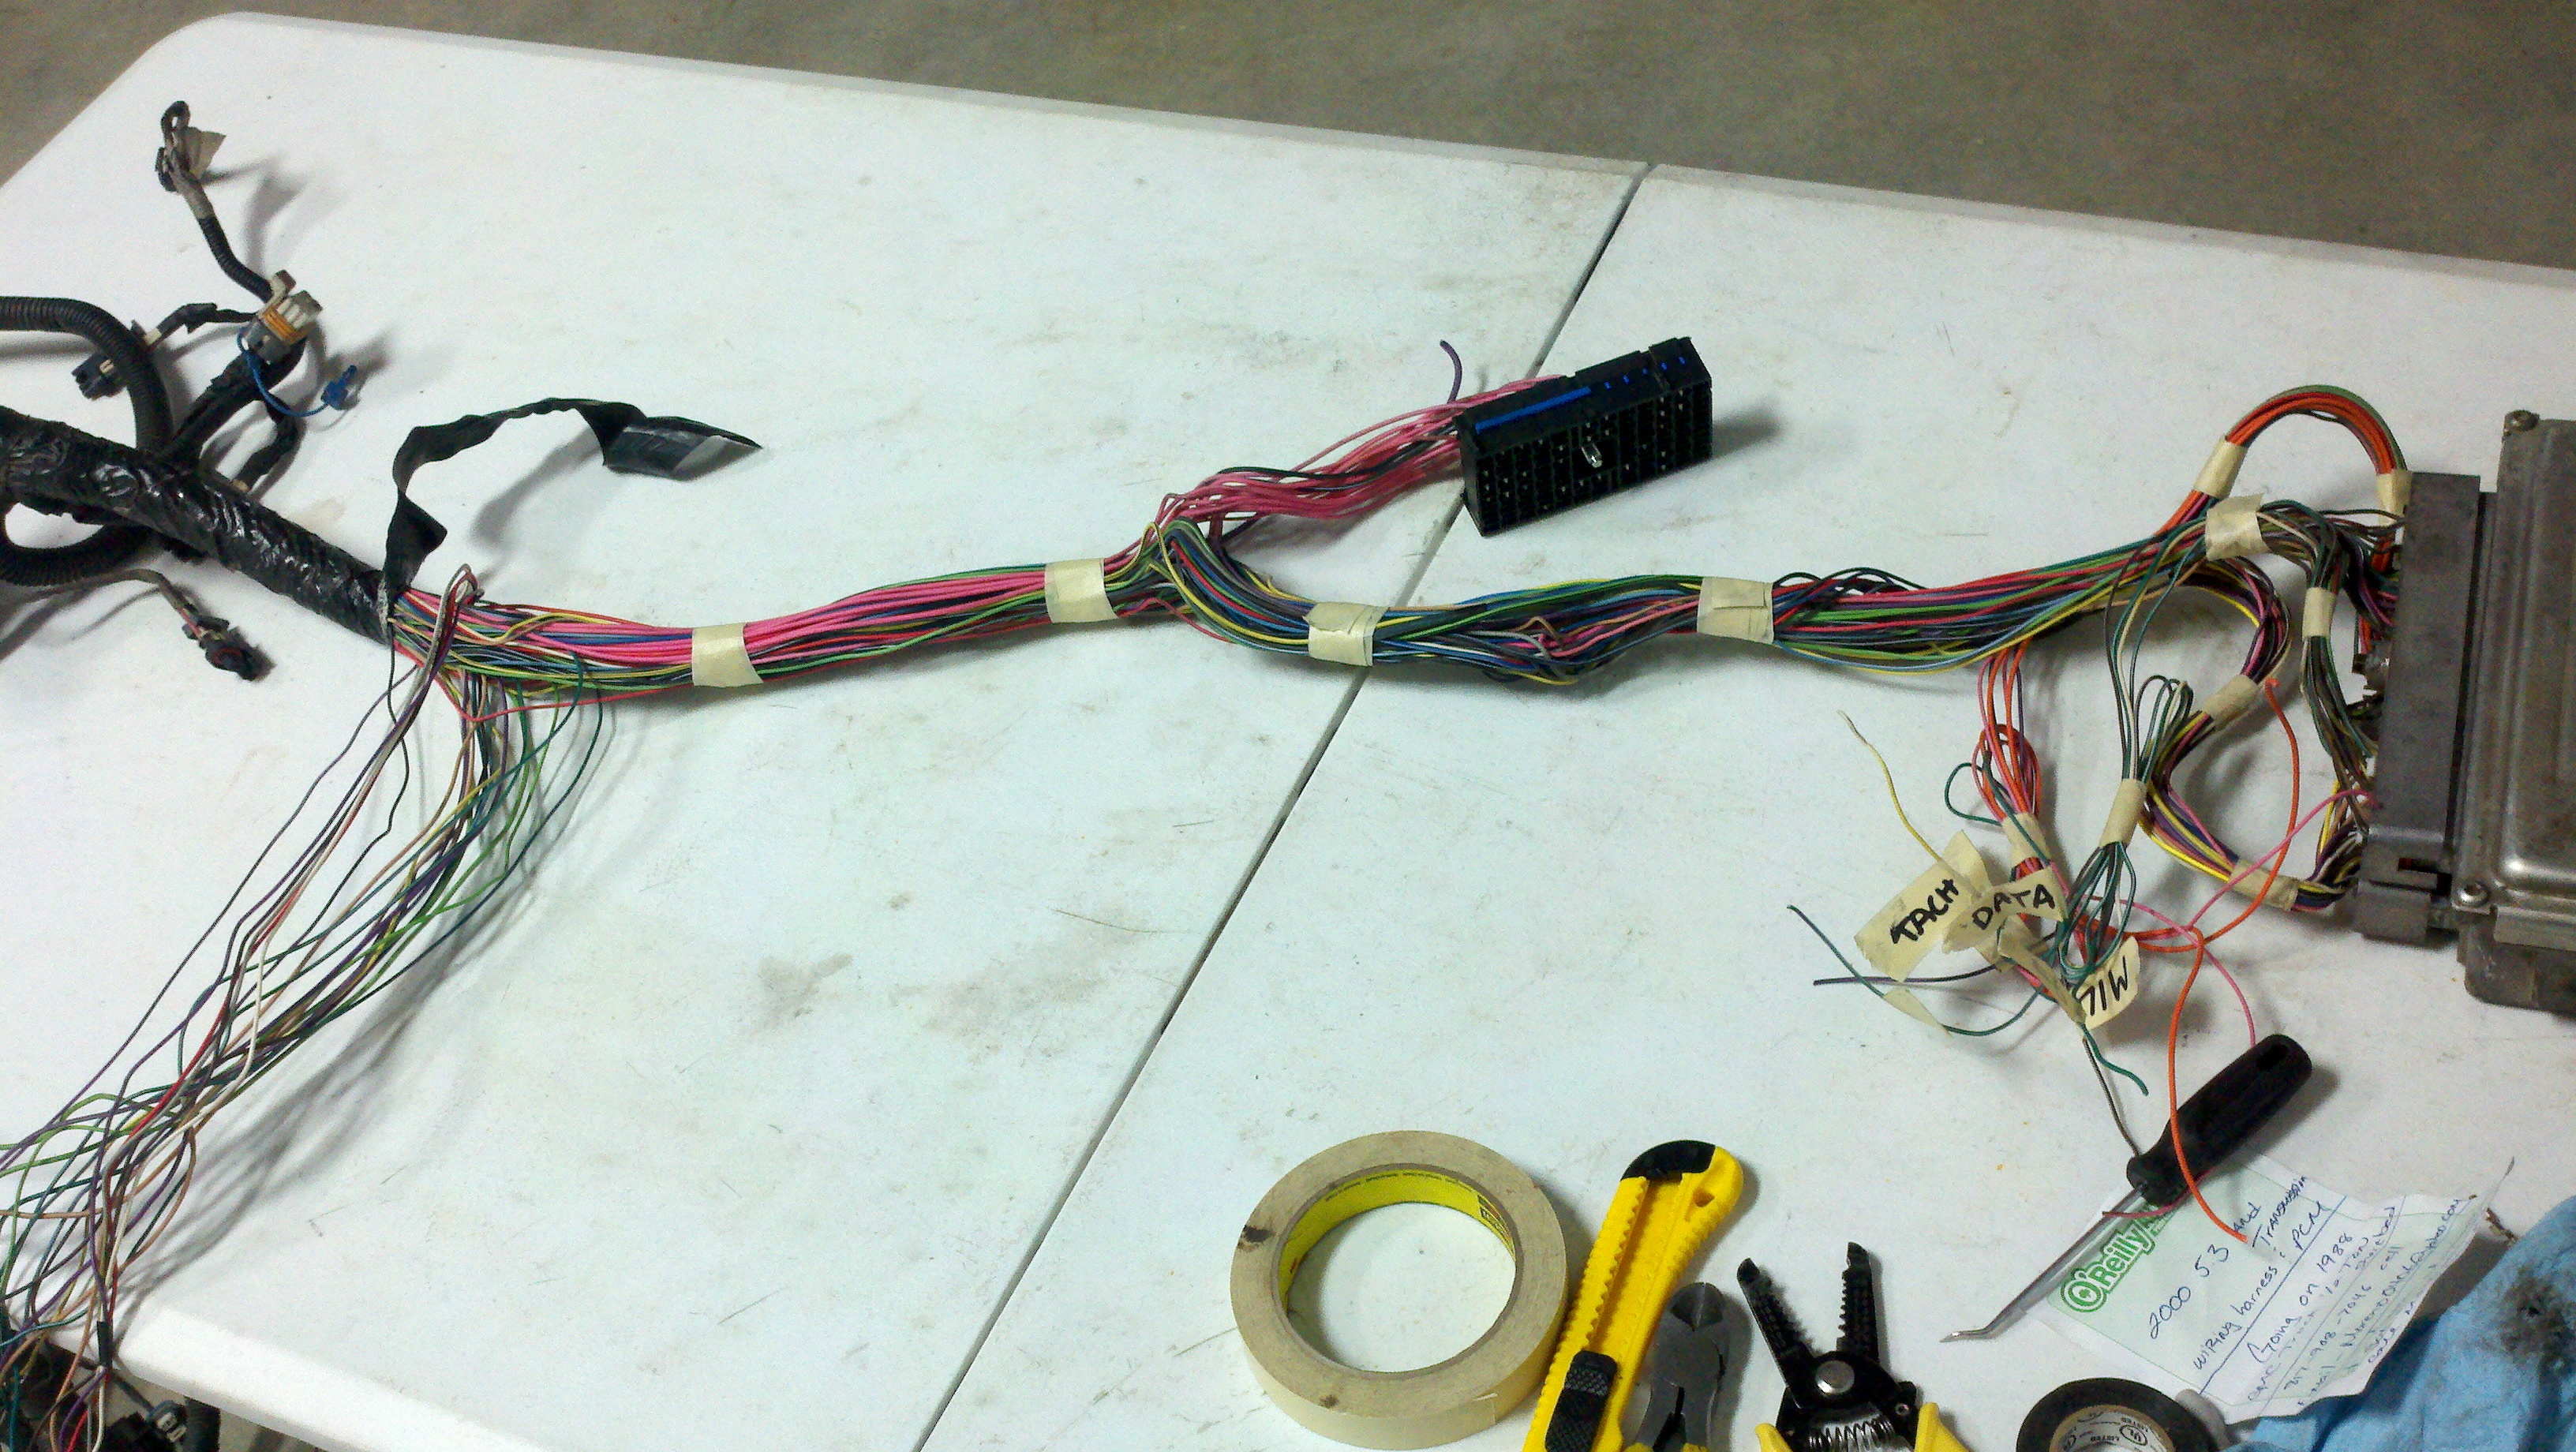 Vortec 48 53 60 Wiring Harness Info Ls1 Labeled And Continue With The Masking Tape To Hold In Its Stock Shape